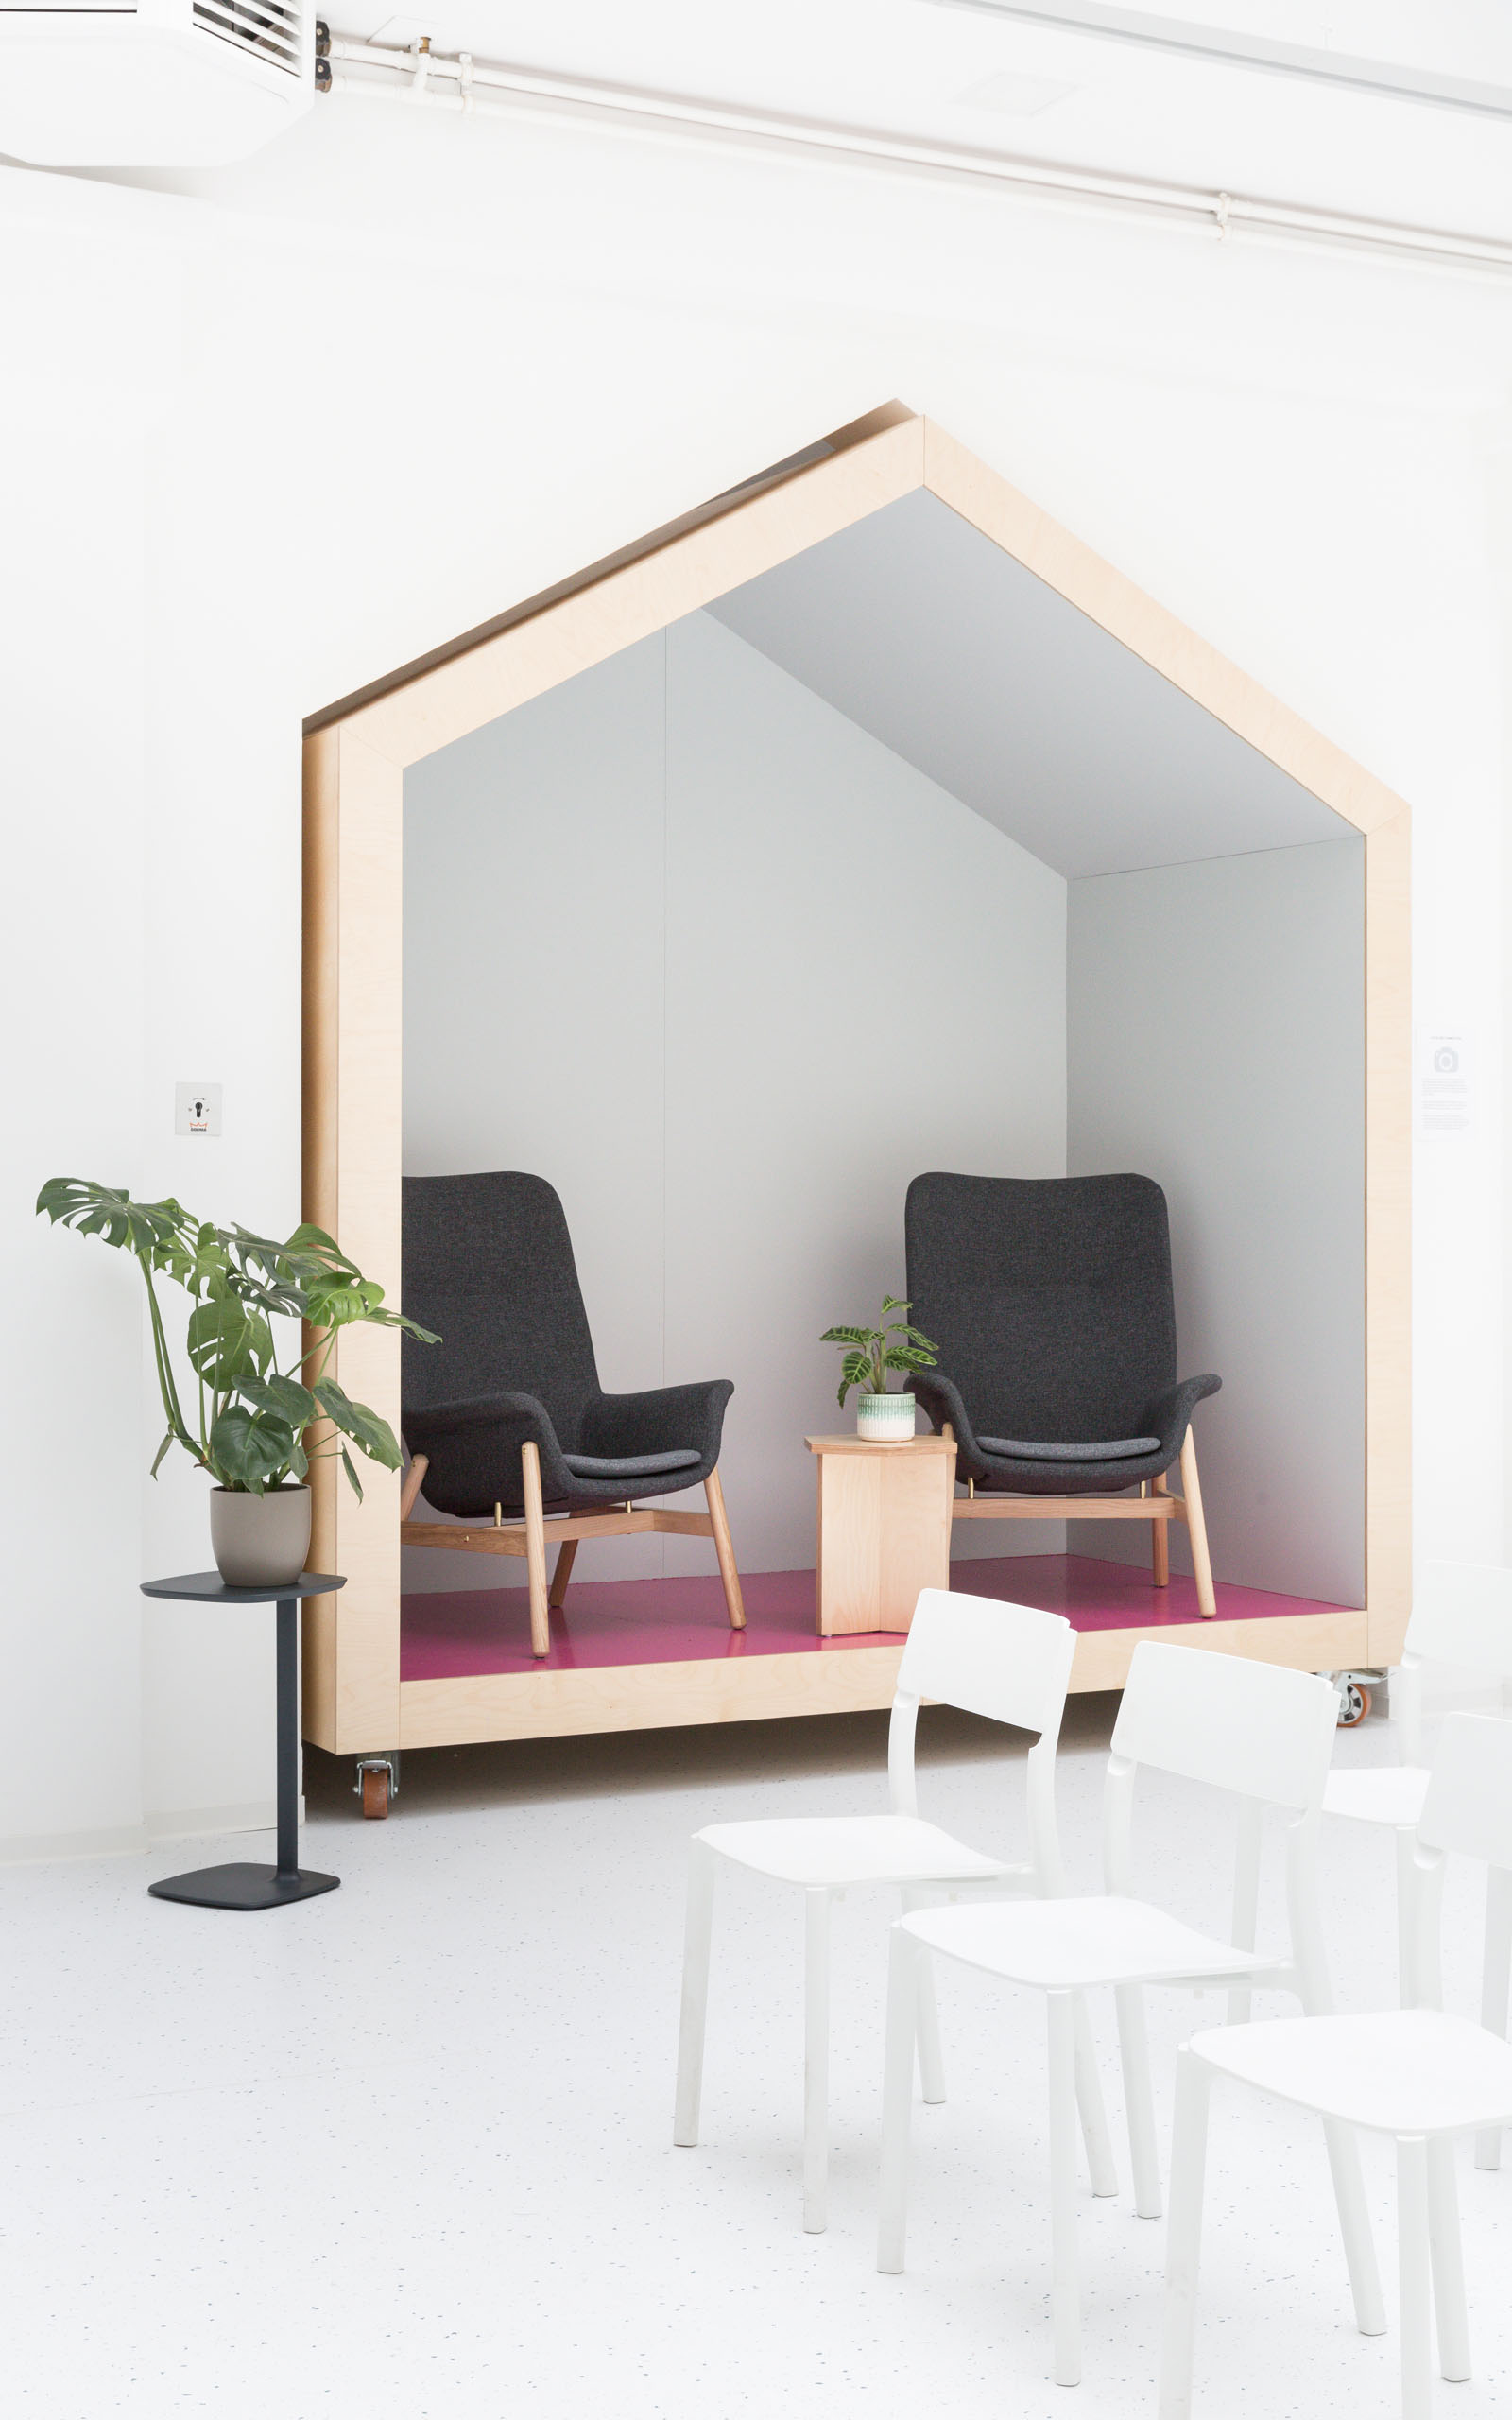 A type of microarchitecture in the iconic shape of a house standing in the Startraum coworking space.